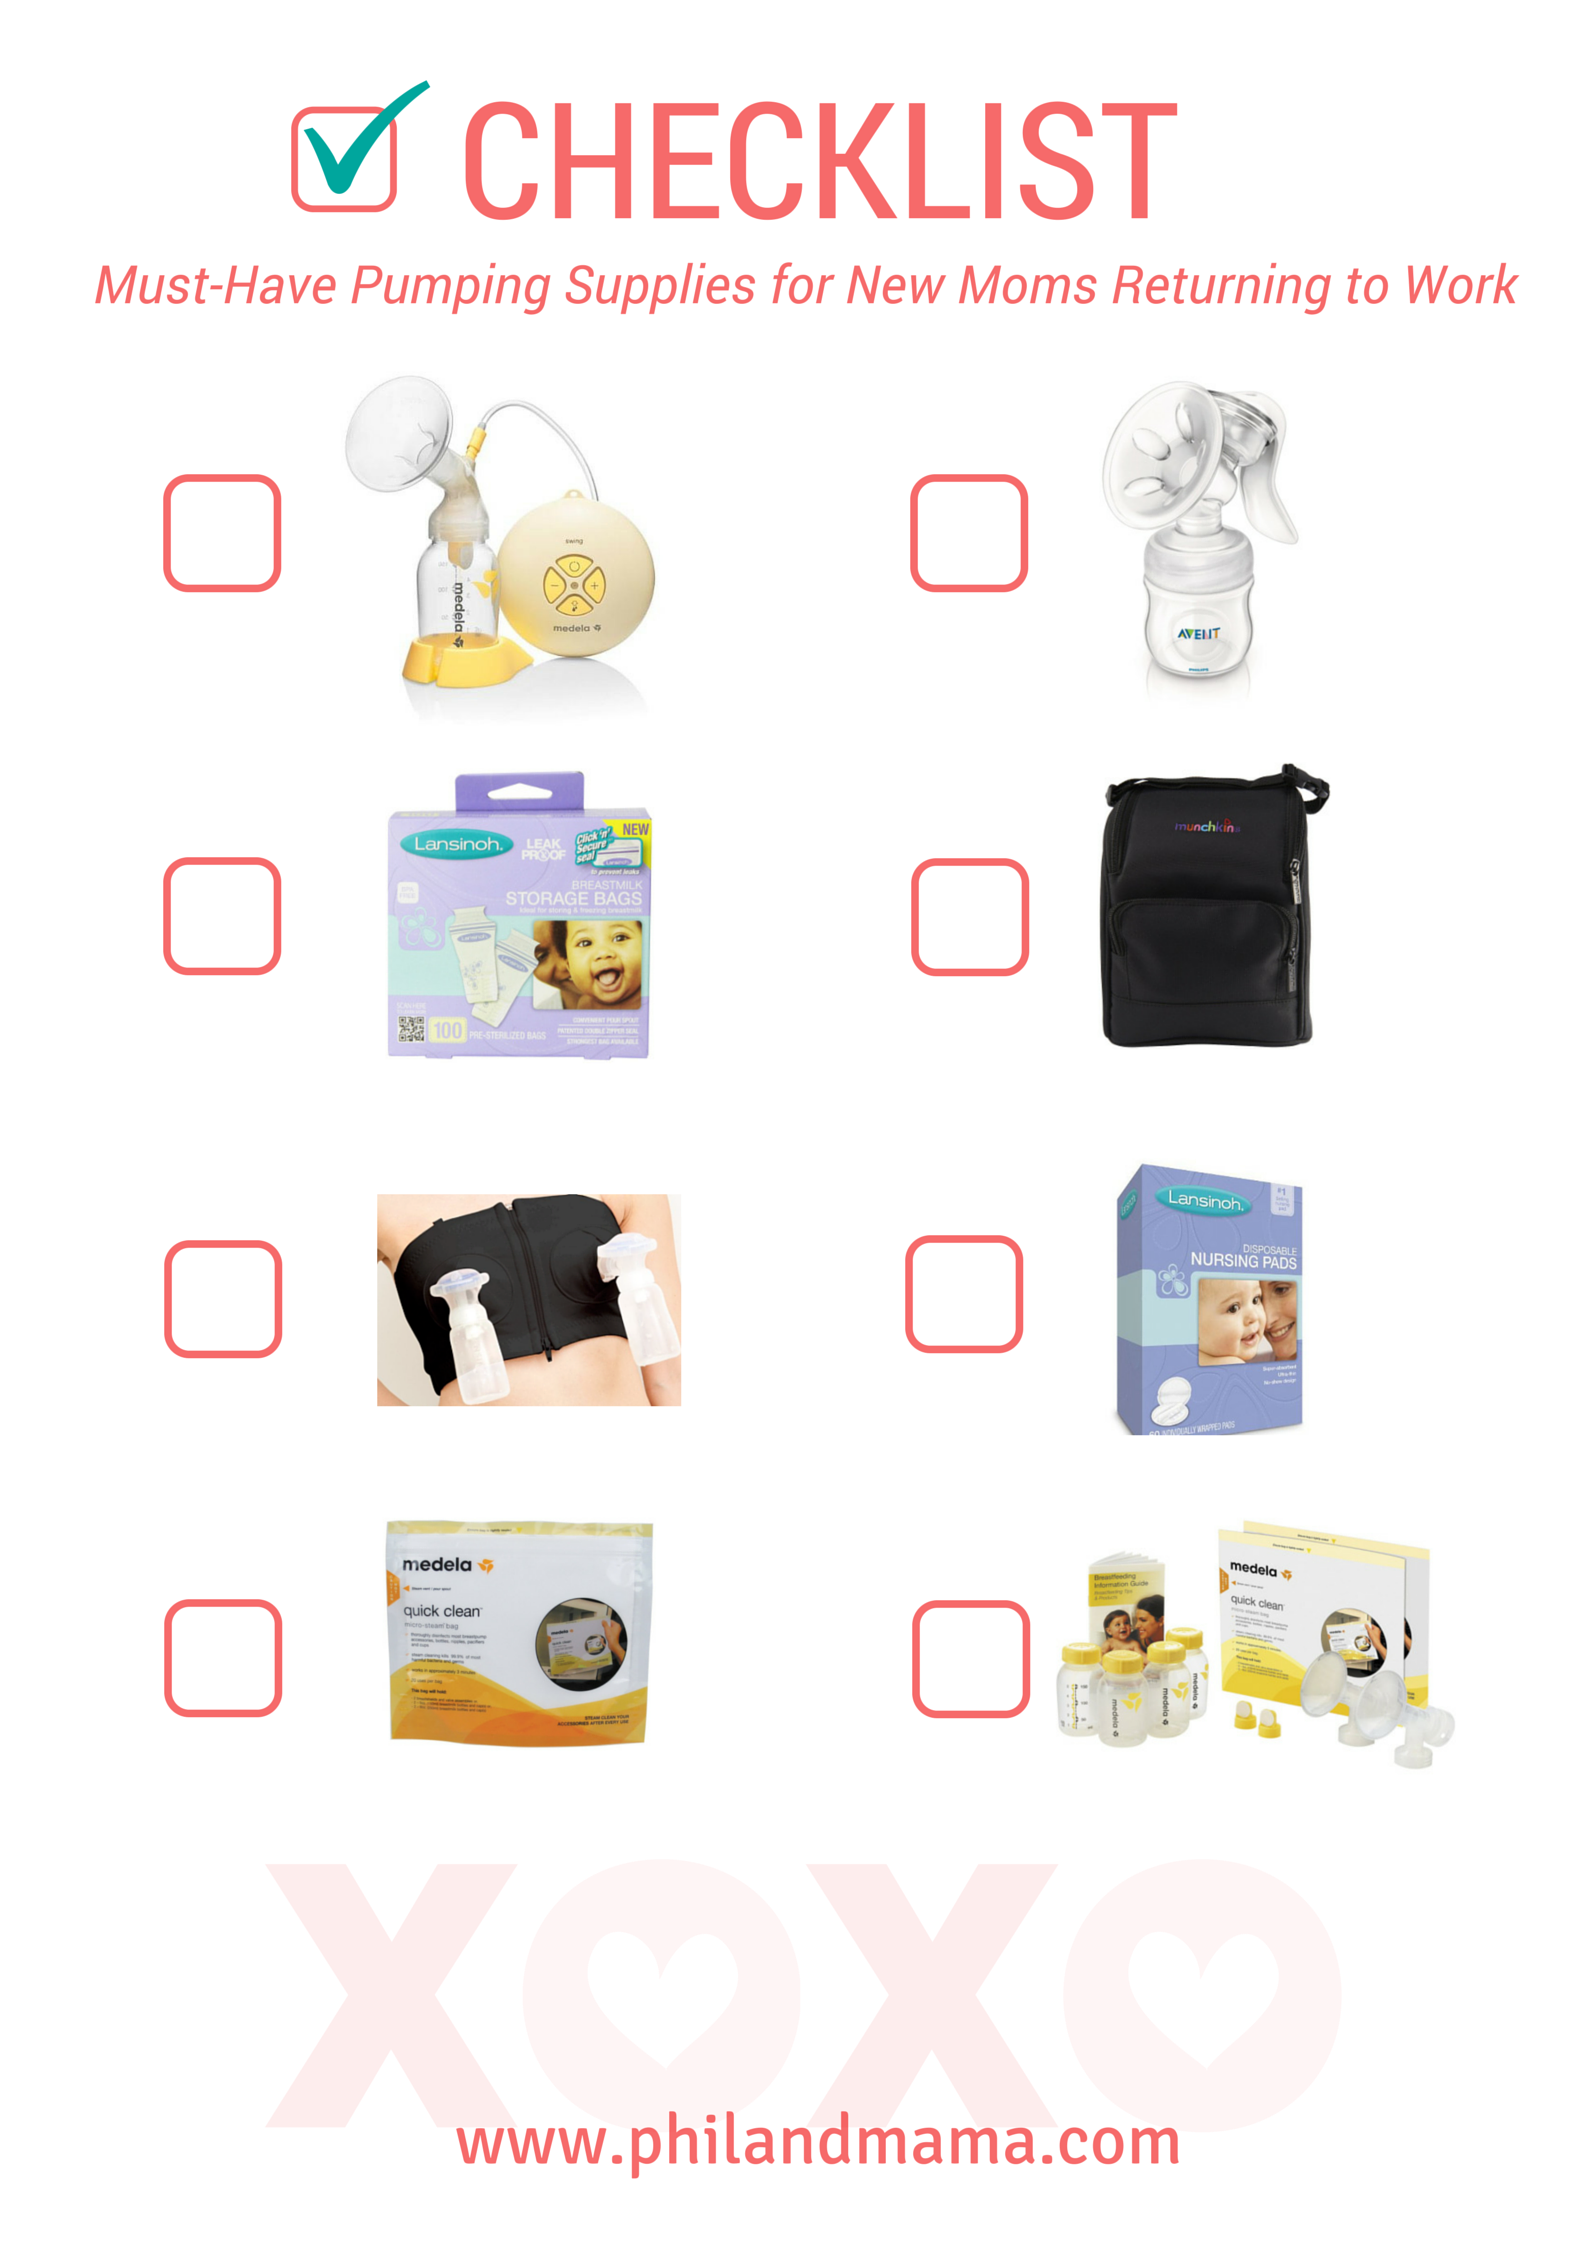 Check List of breast milk pumping supplies for new moms returning to work after maternity leave. good supplies to have during traveling and outings. feel free to print